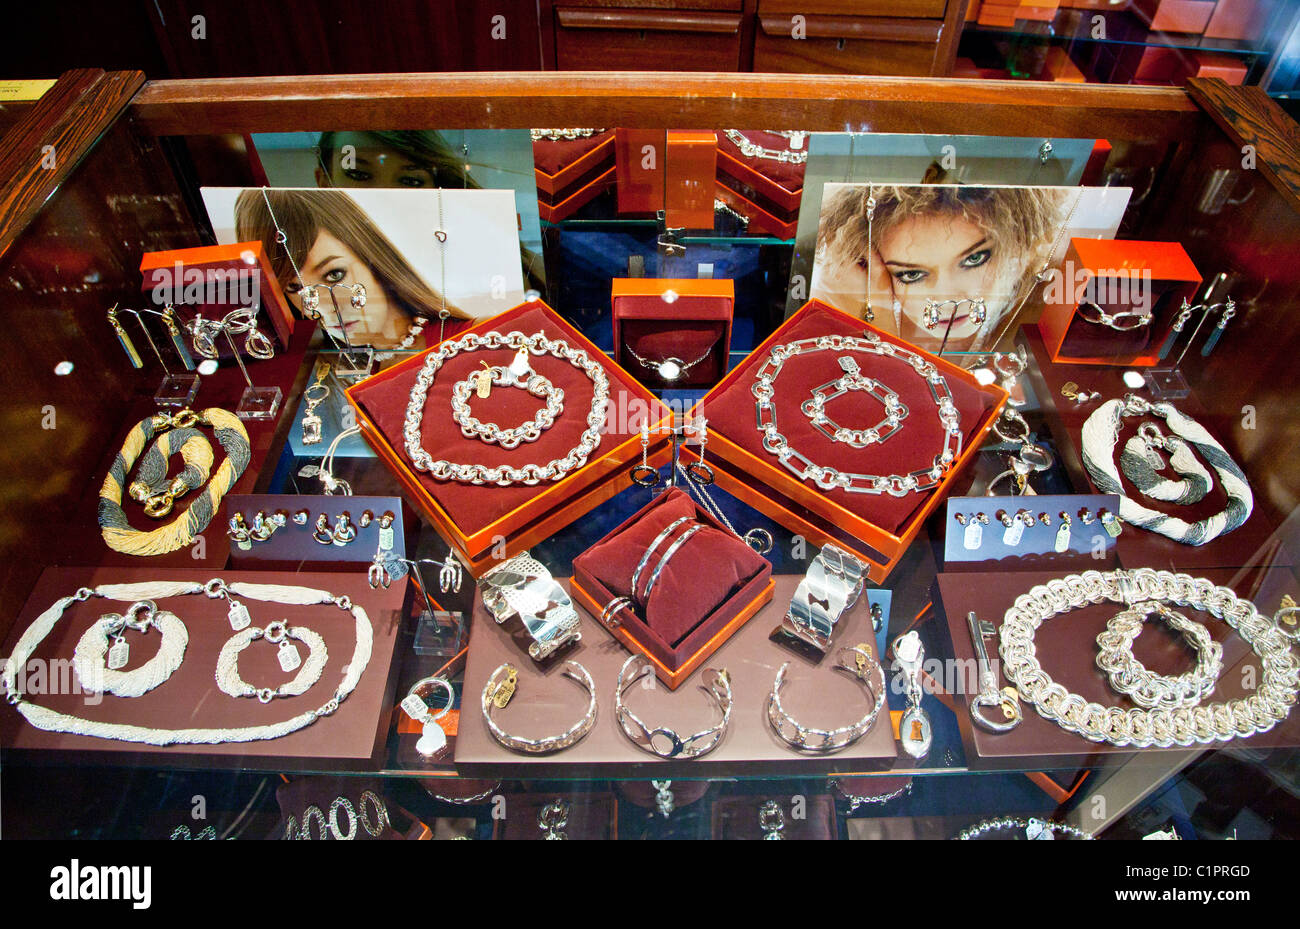 Counter display of jewellery in a jeweller's shop in the provincial English town of Warminster in Wiltshire, - Stock Image